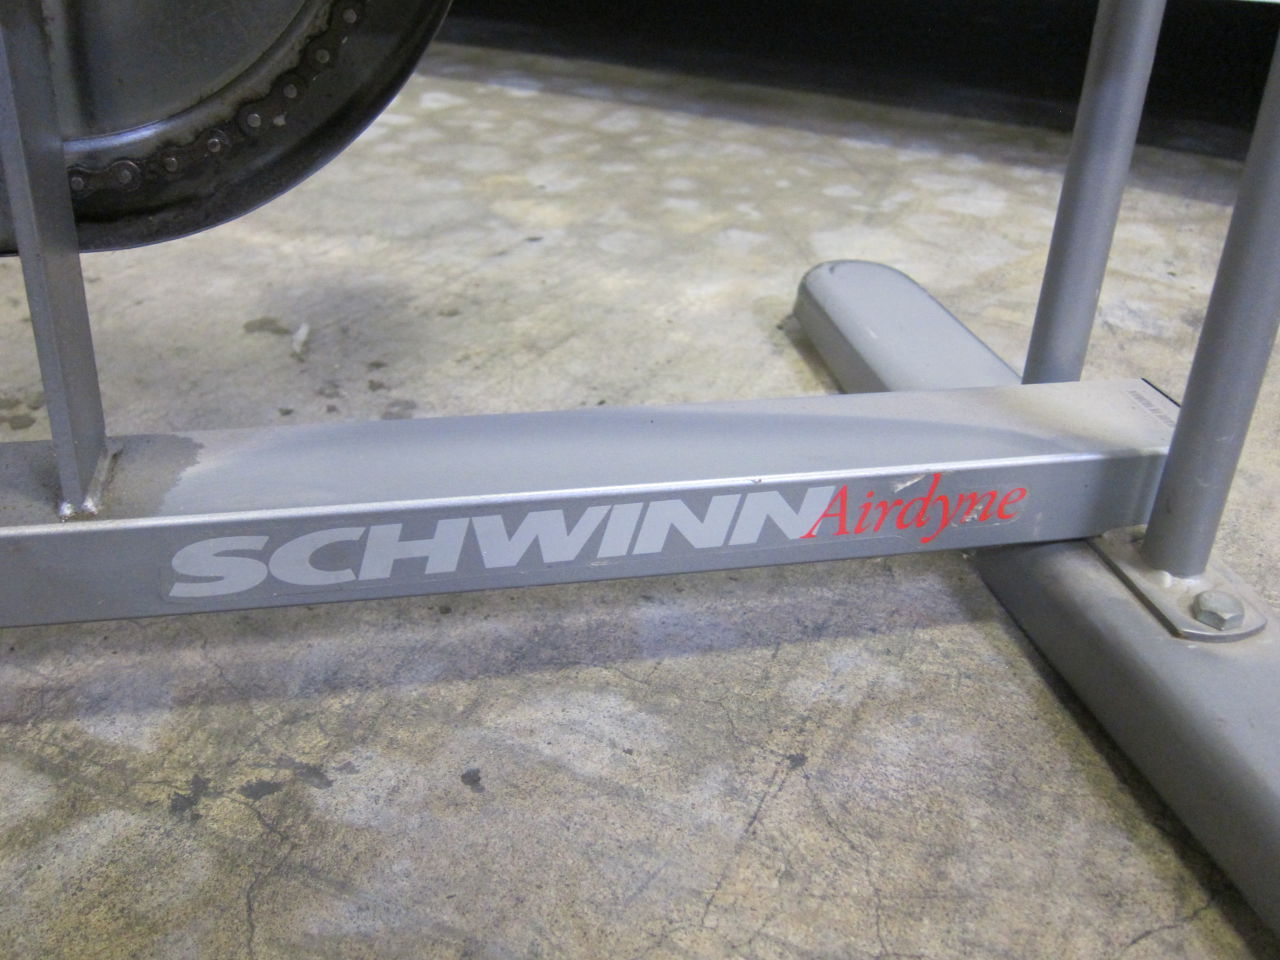 SCHWINN Airdyne Exercise Bike Recreational and Fitness Equipment